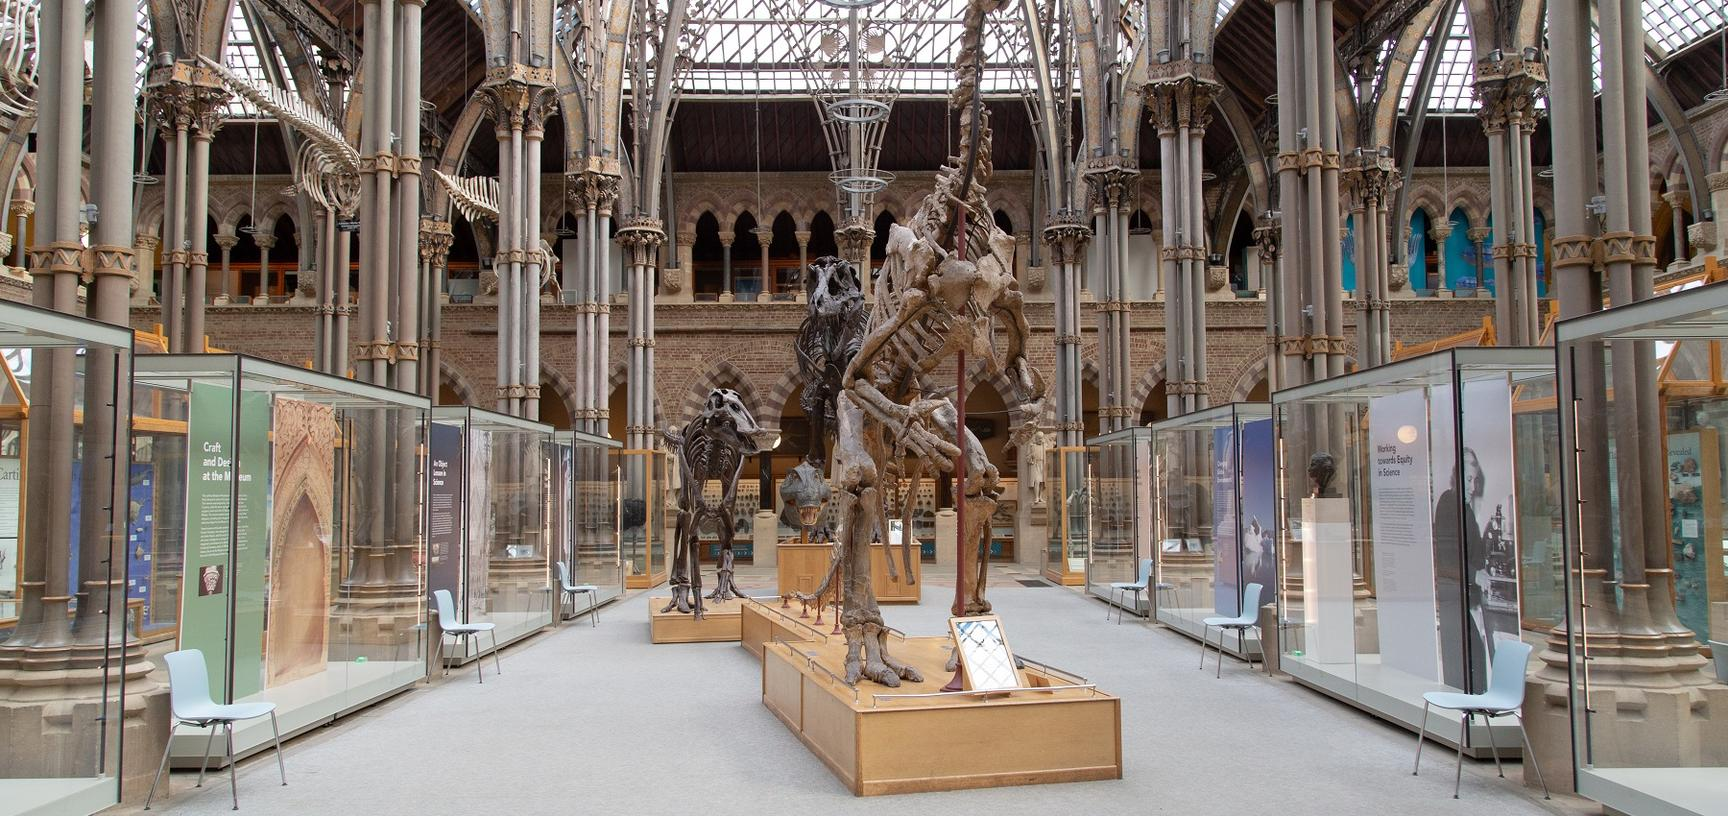 View of cathedral-like iron and glass court featuring two central dinosaur skeletons flanked by glass showcases